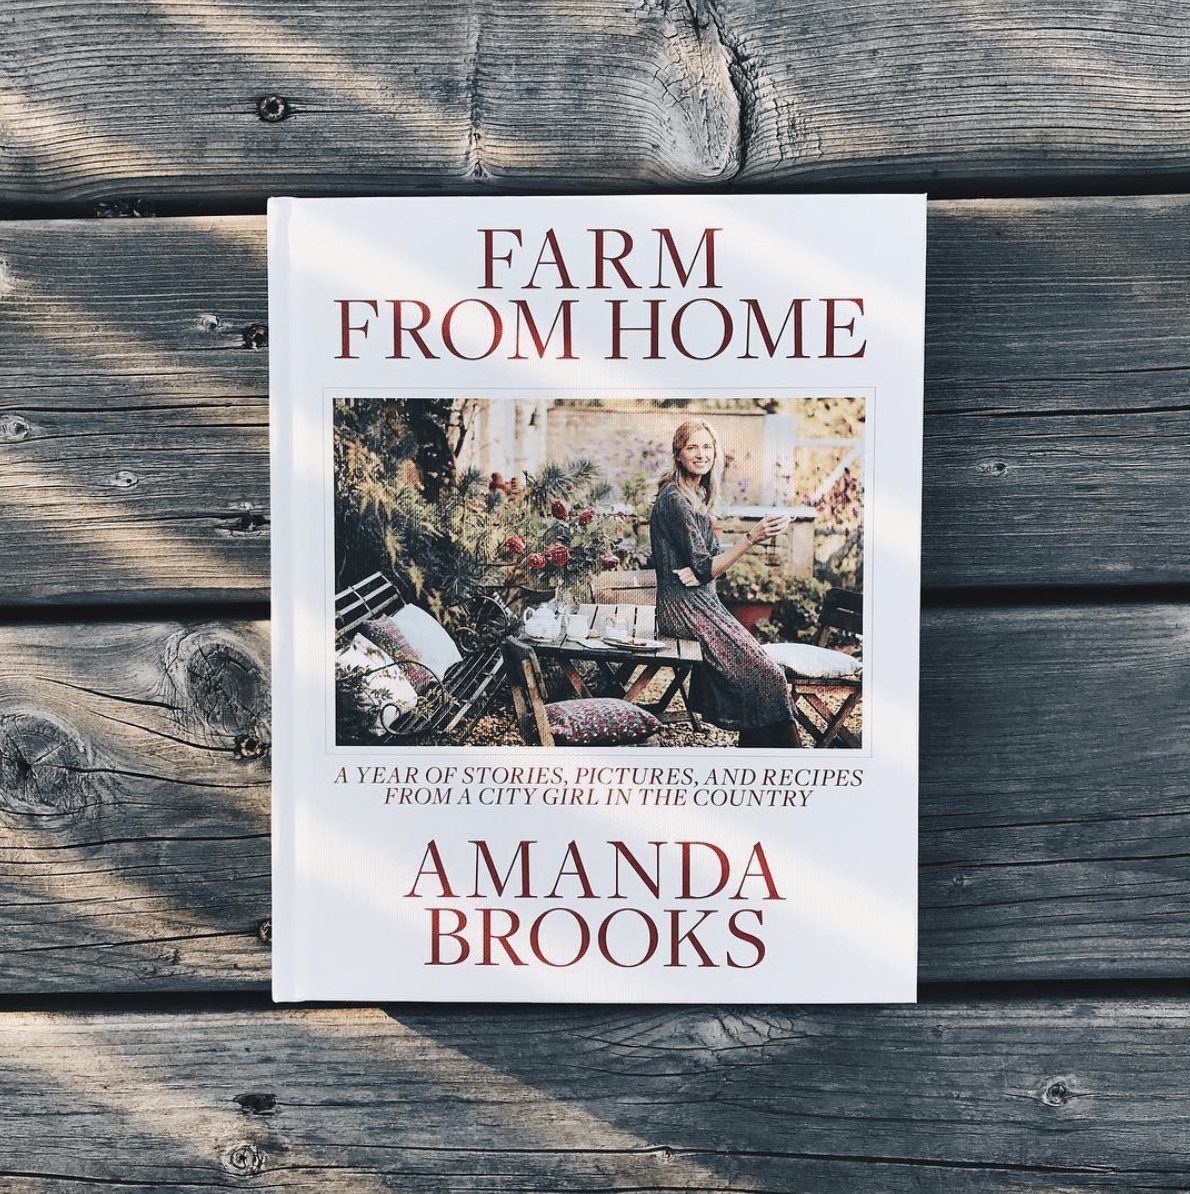 amanda brooks farm from home book edit seven toronto 2018